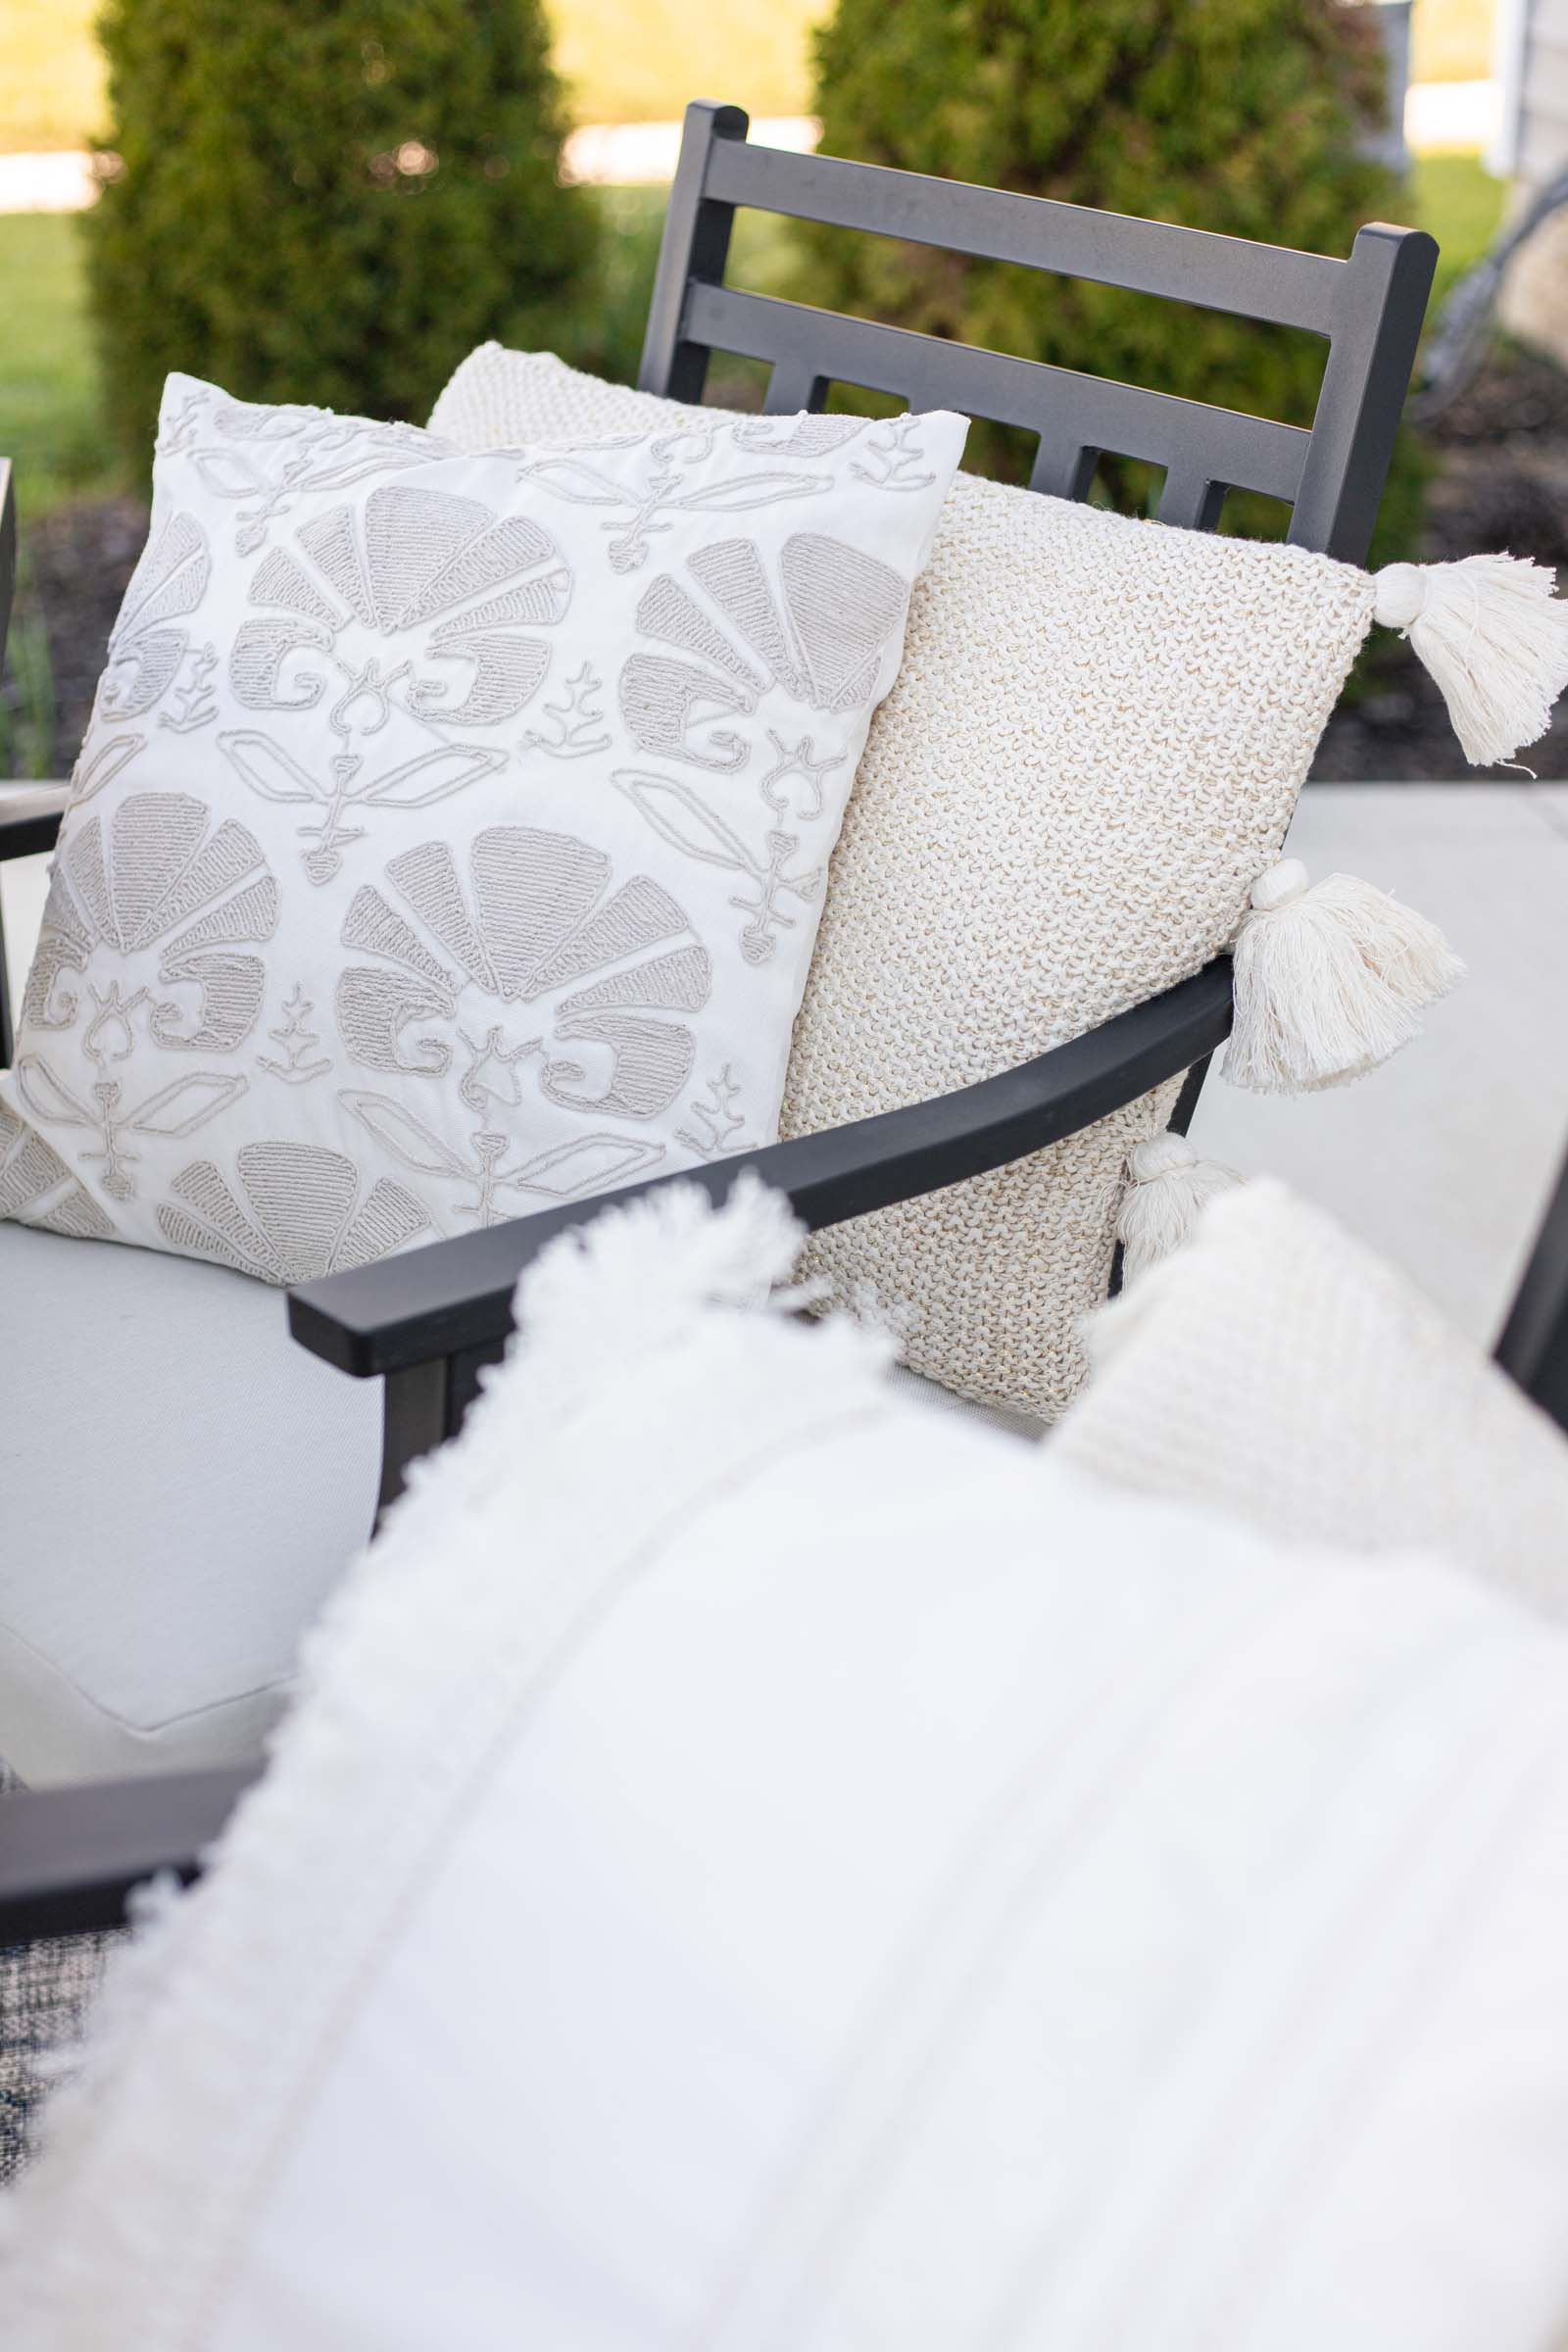 beige and white decorative pillows